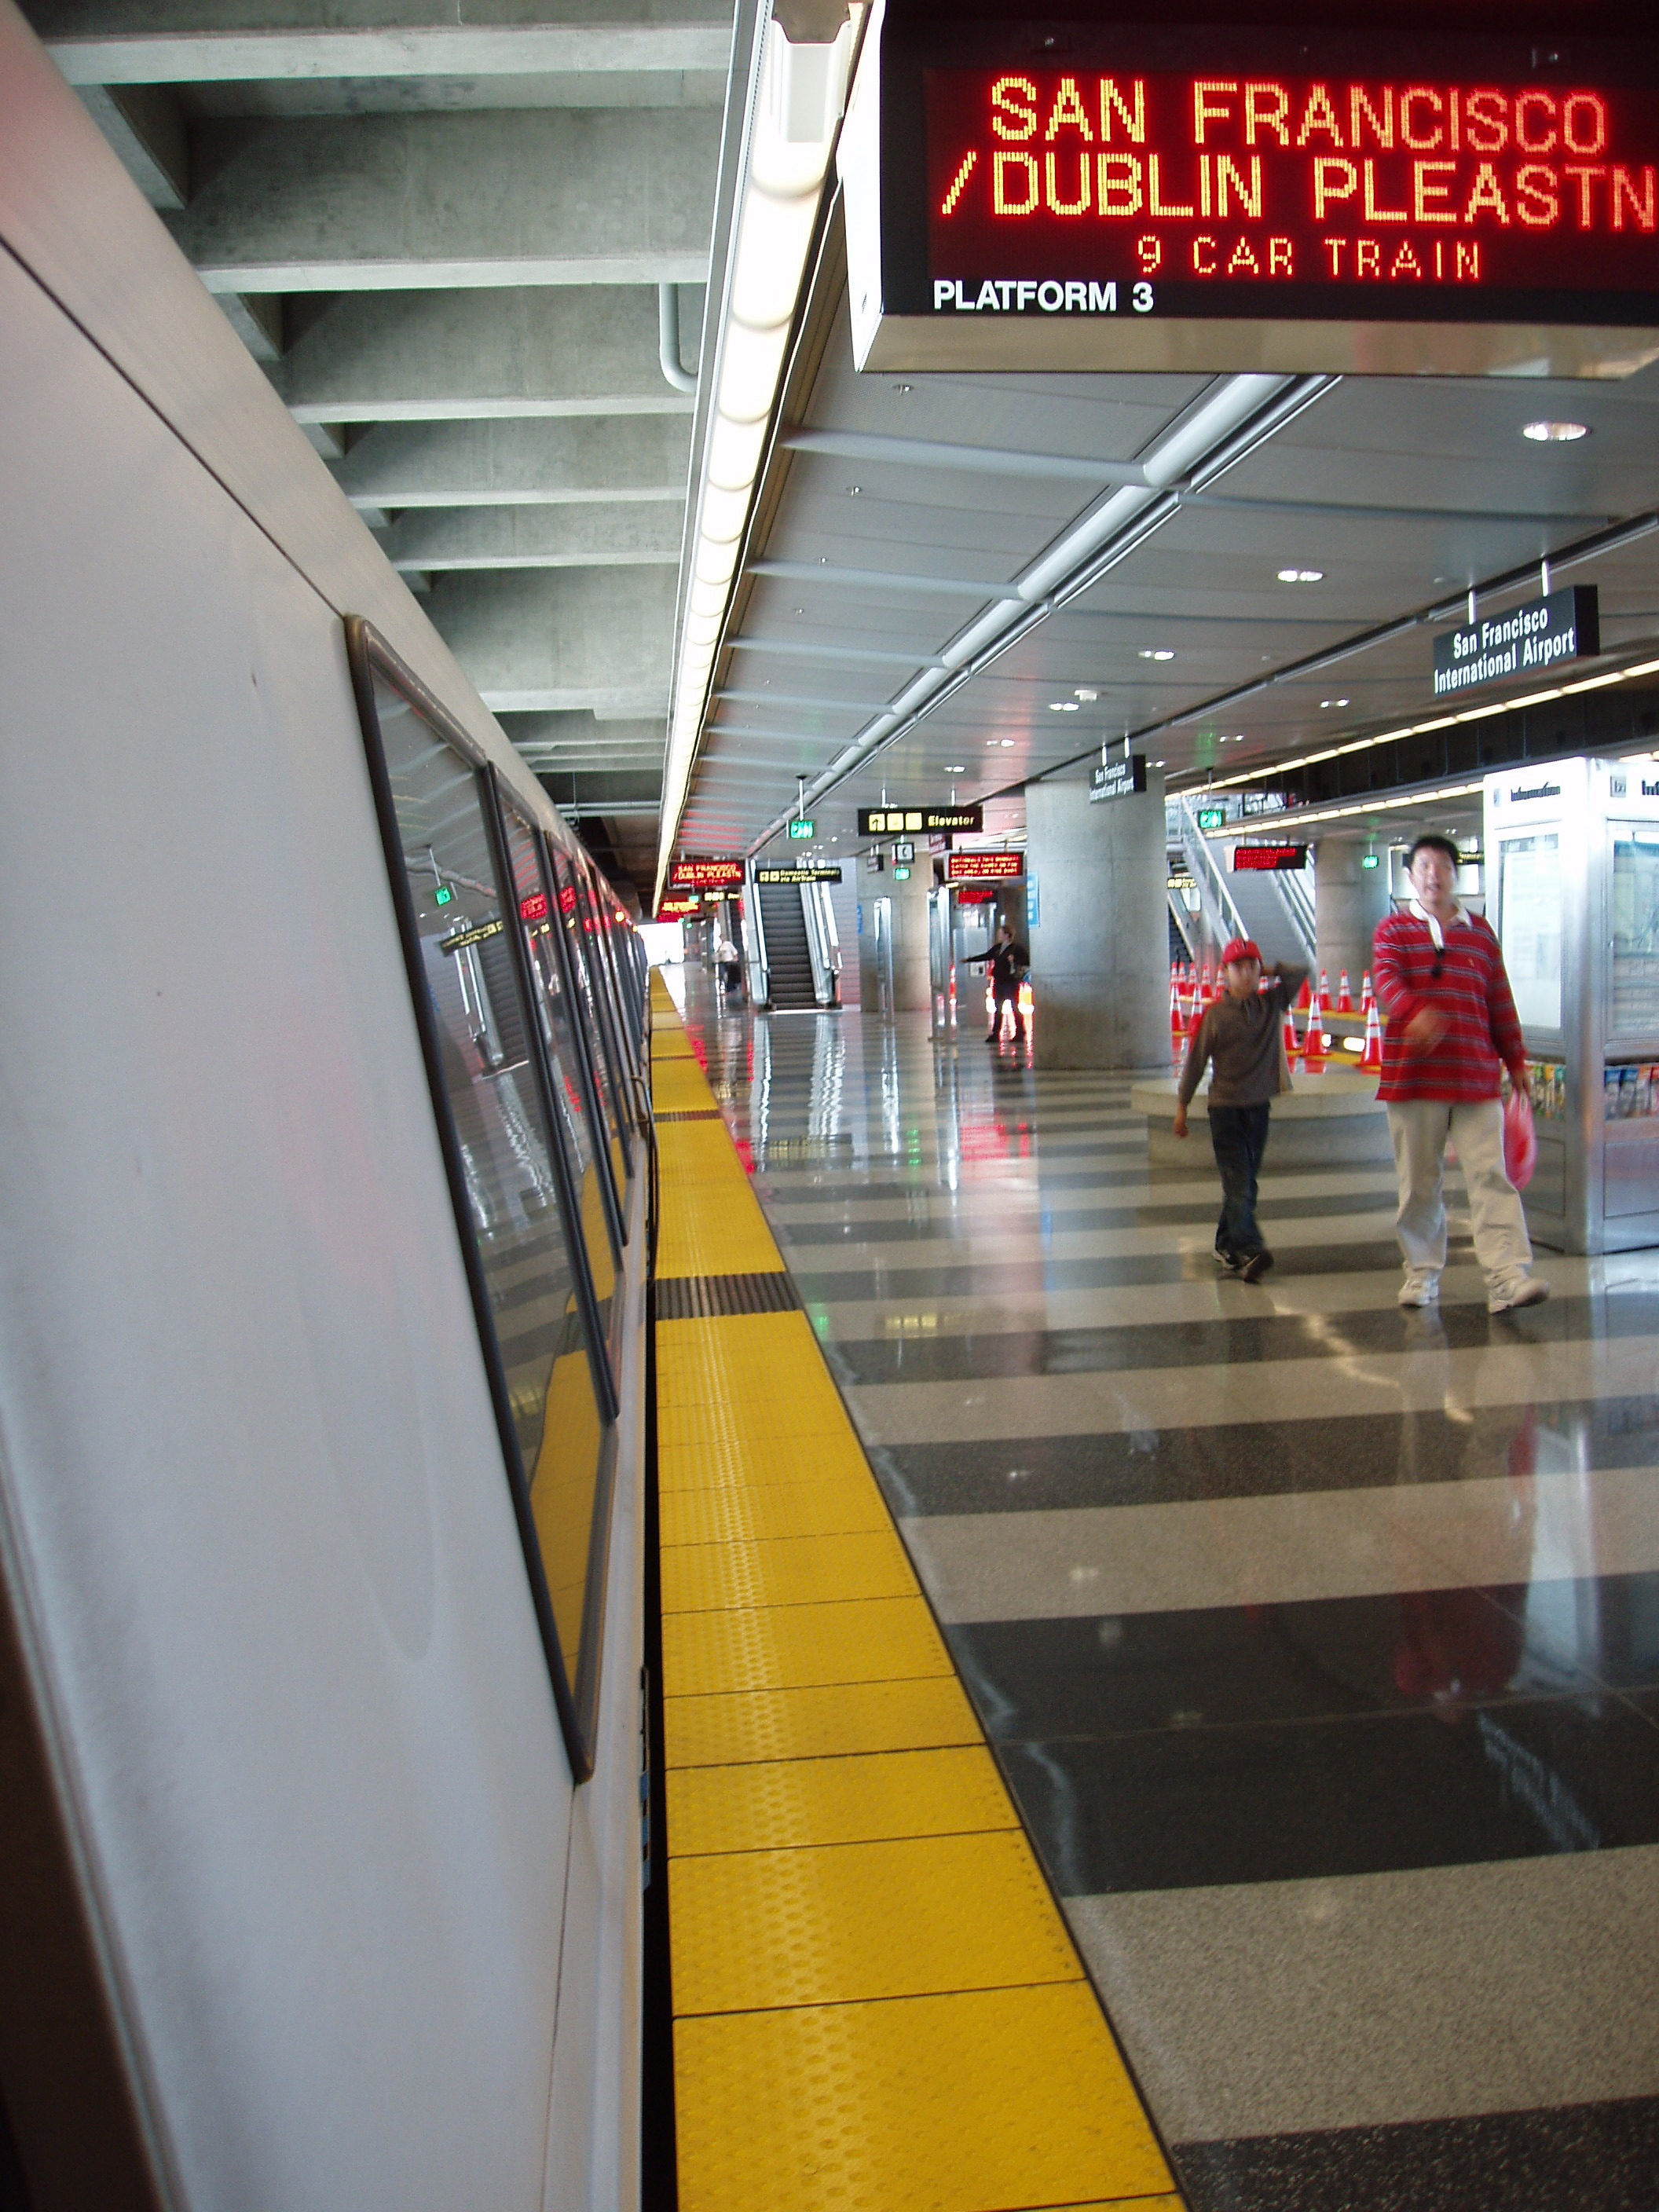 A BART Train loads passengers at SFO